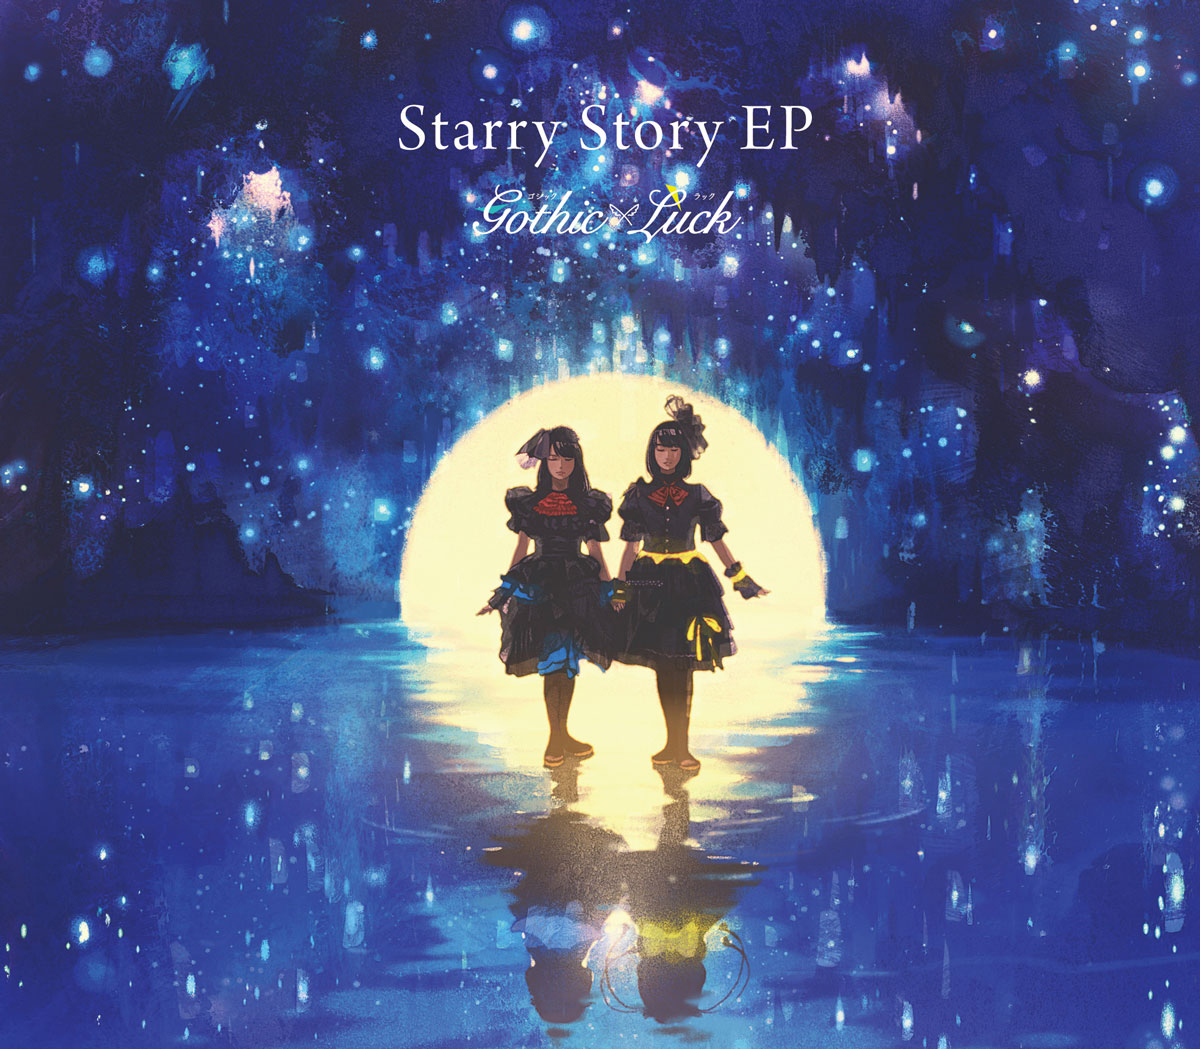 Gothic×Luck「Starry Story EP」初回限定盤